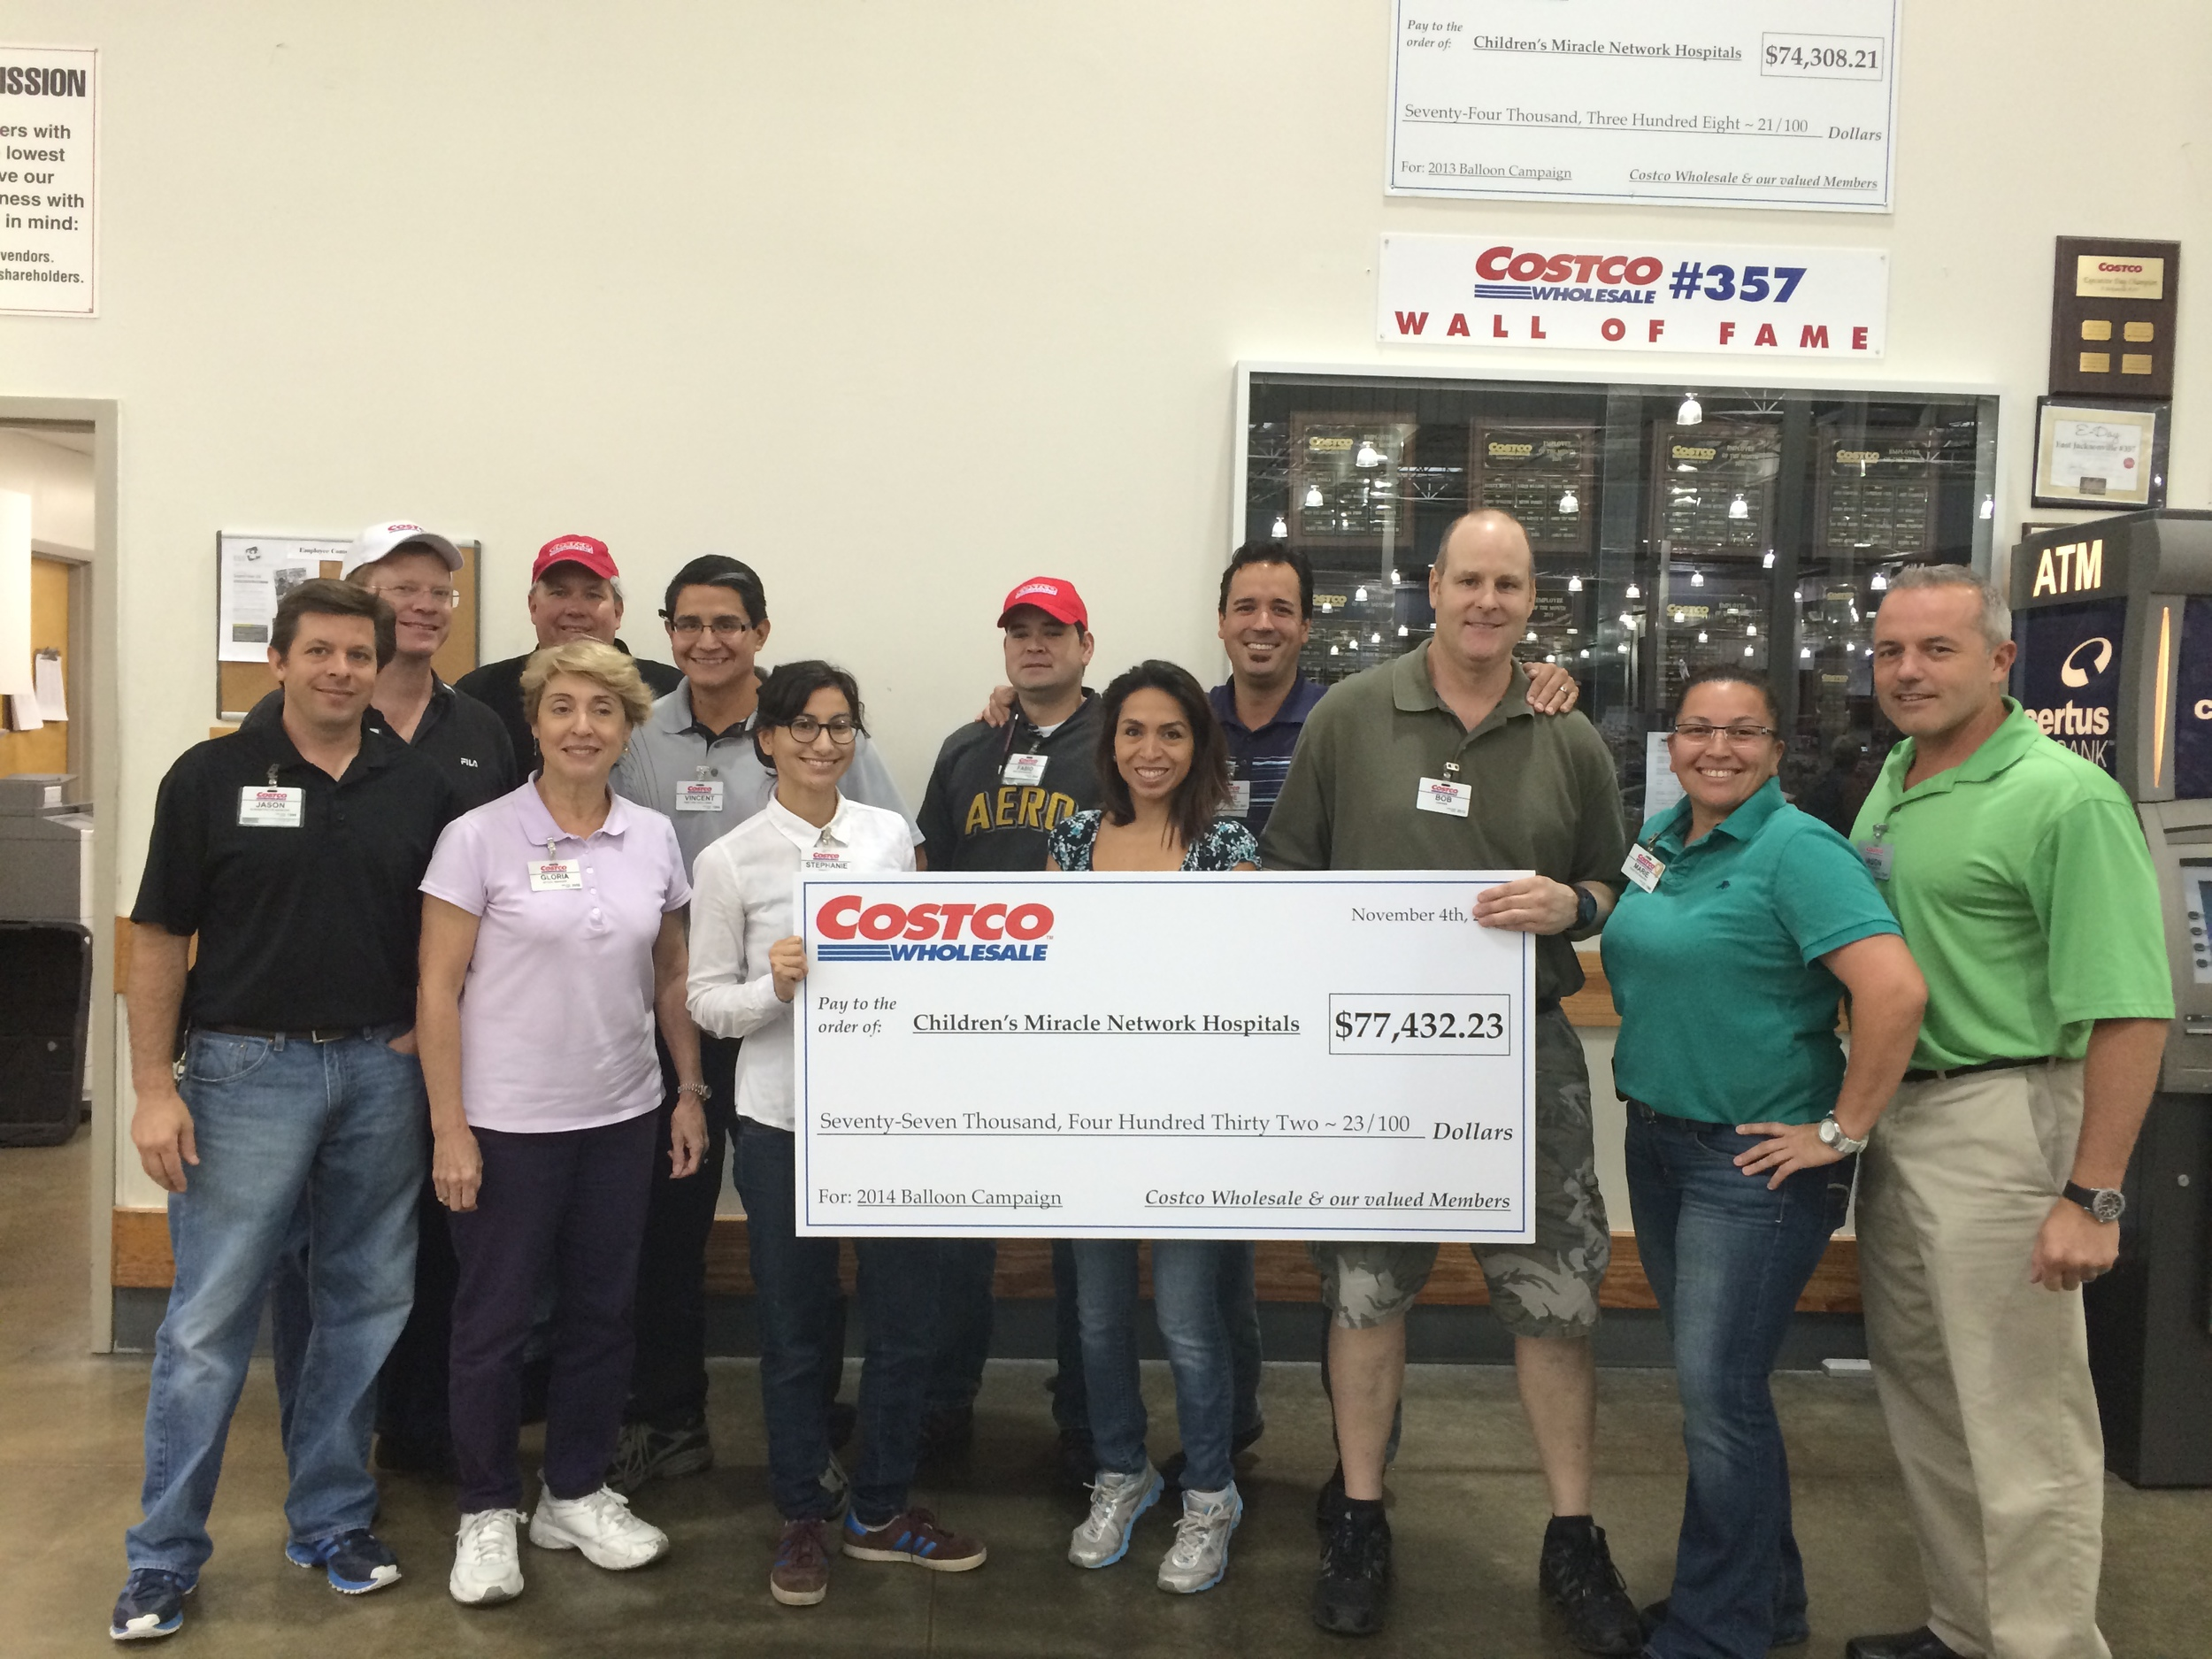 Costco Check Presentation 5.JPG